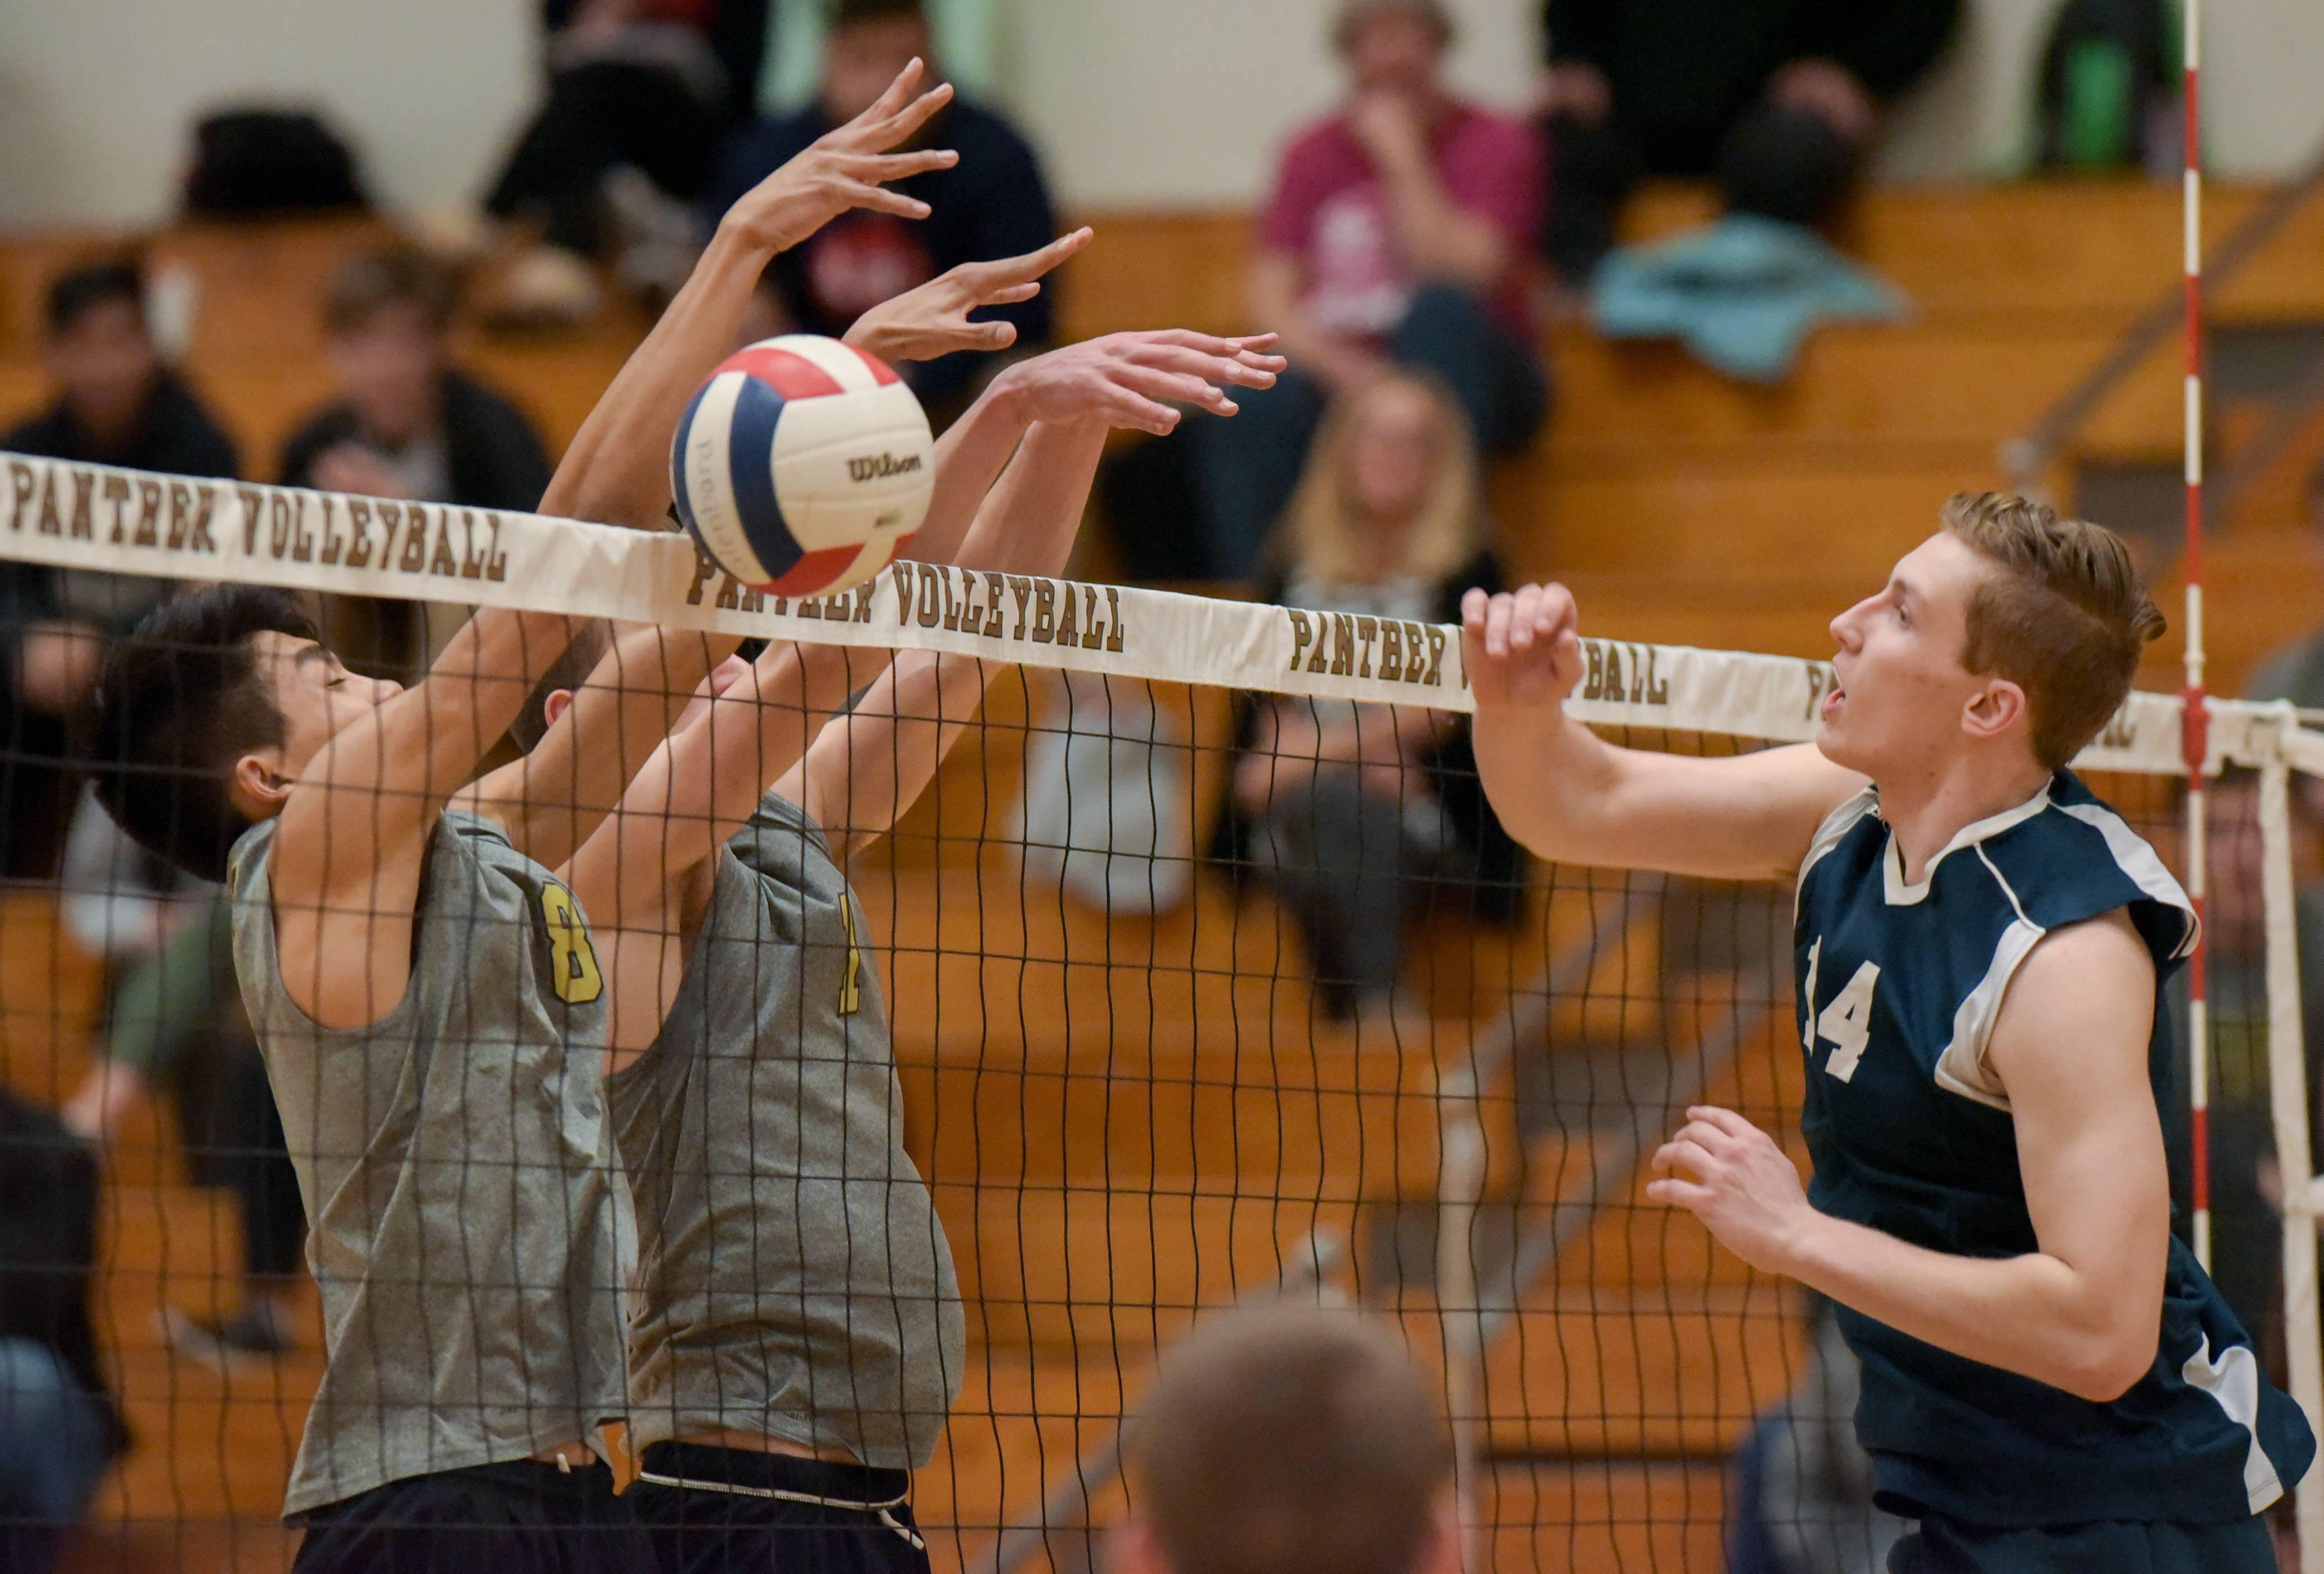 Glenbard North's Bryan Nguyen and Eric Tripp block a shot by Addison Trail's Michael Pudlo during varsity boys volleyball Monday in Carol Stream.